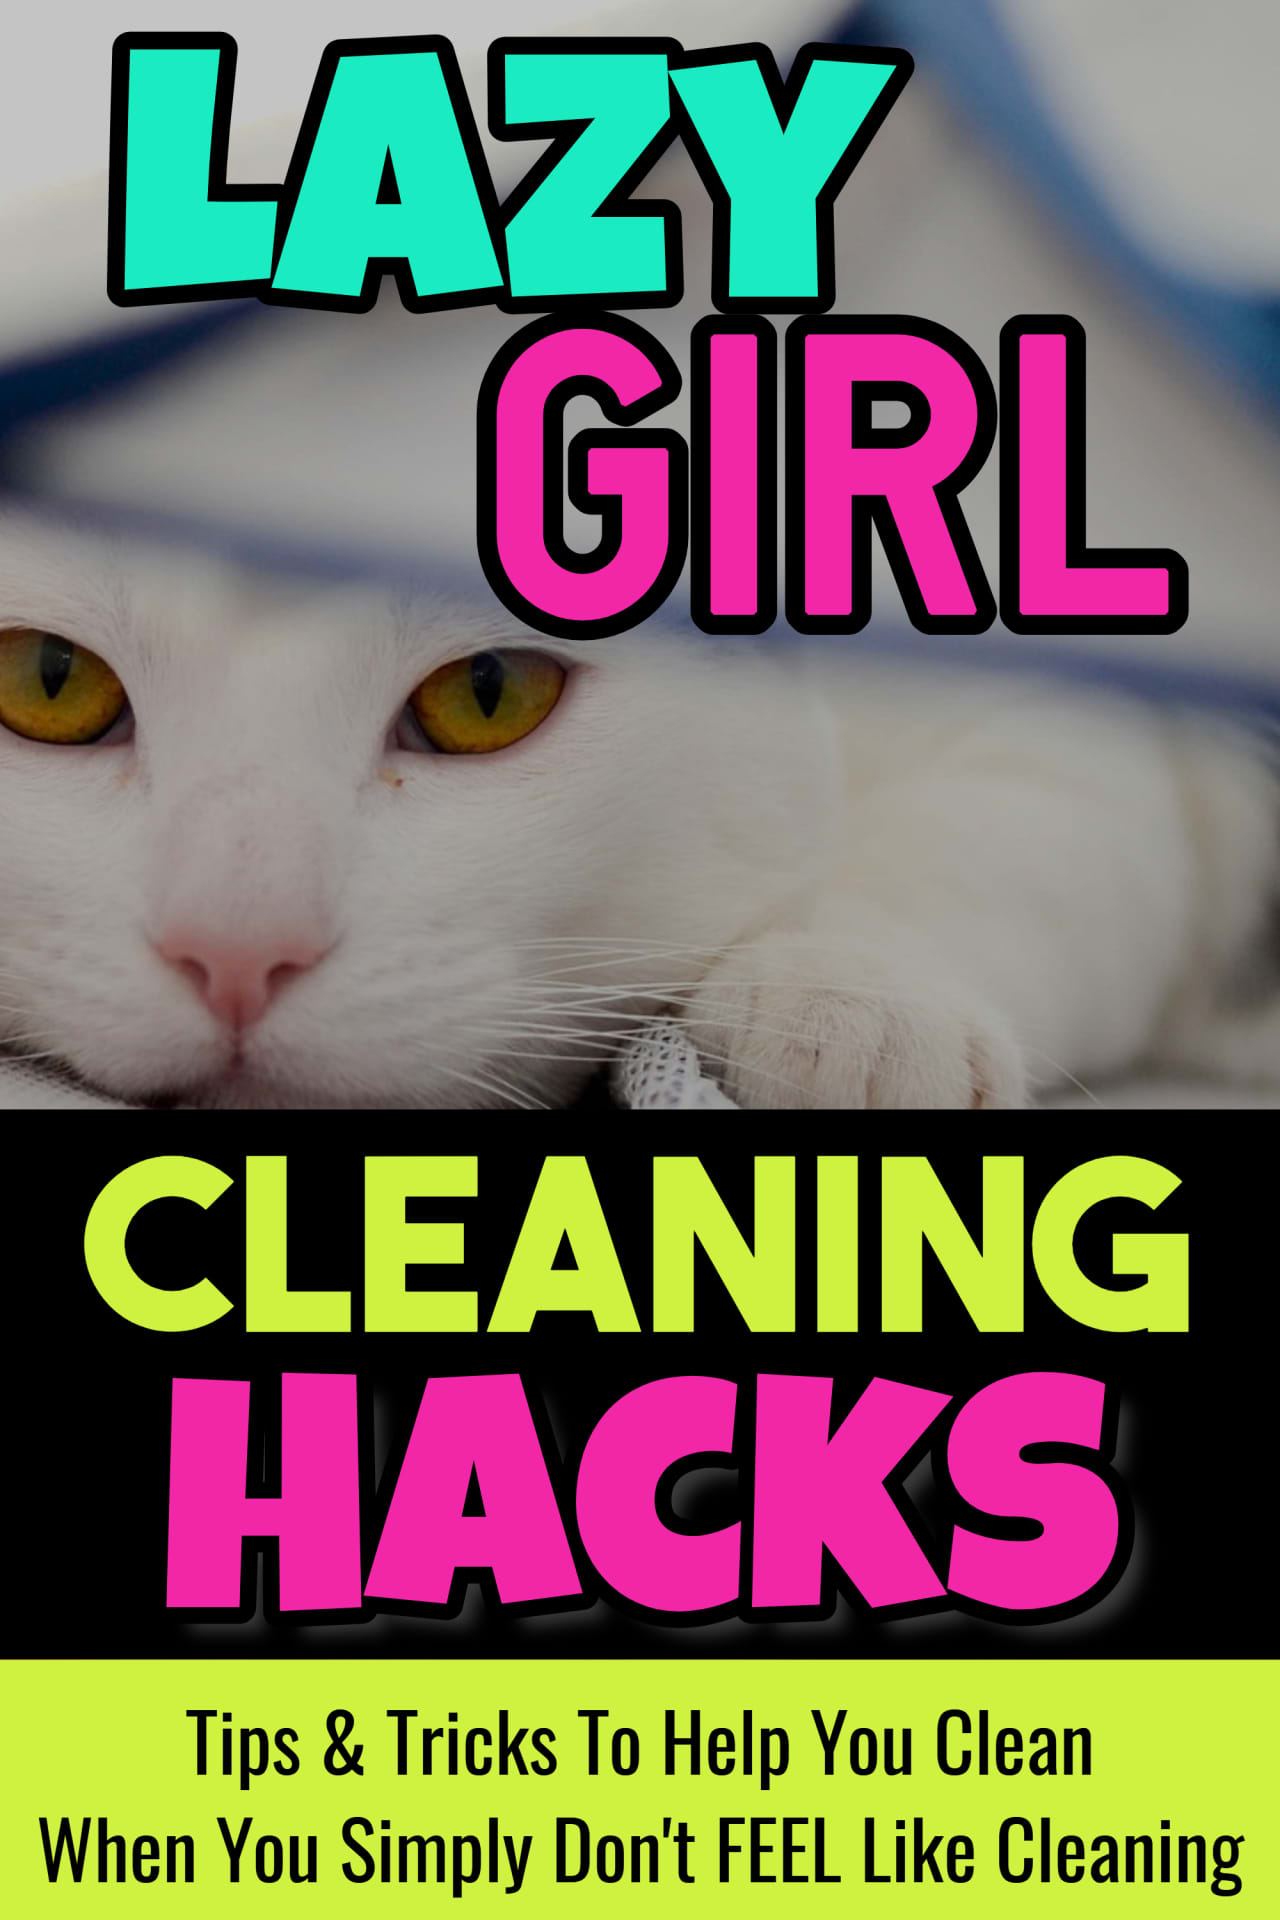 Cleaning Hacks, Cleaning Tips, Cleaning Checklists and Schedules for LAZY girls!  Can't get motivated to clean but your house is a DISASTER?  Here are some easy DIY tips and tricks (as well as some brilliant home organization hacks) to organize, declutter and CLEAN your house!